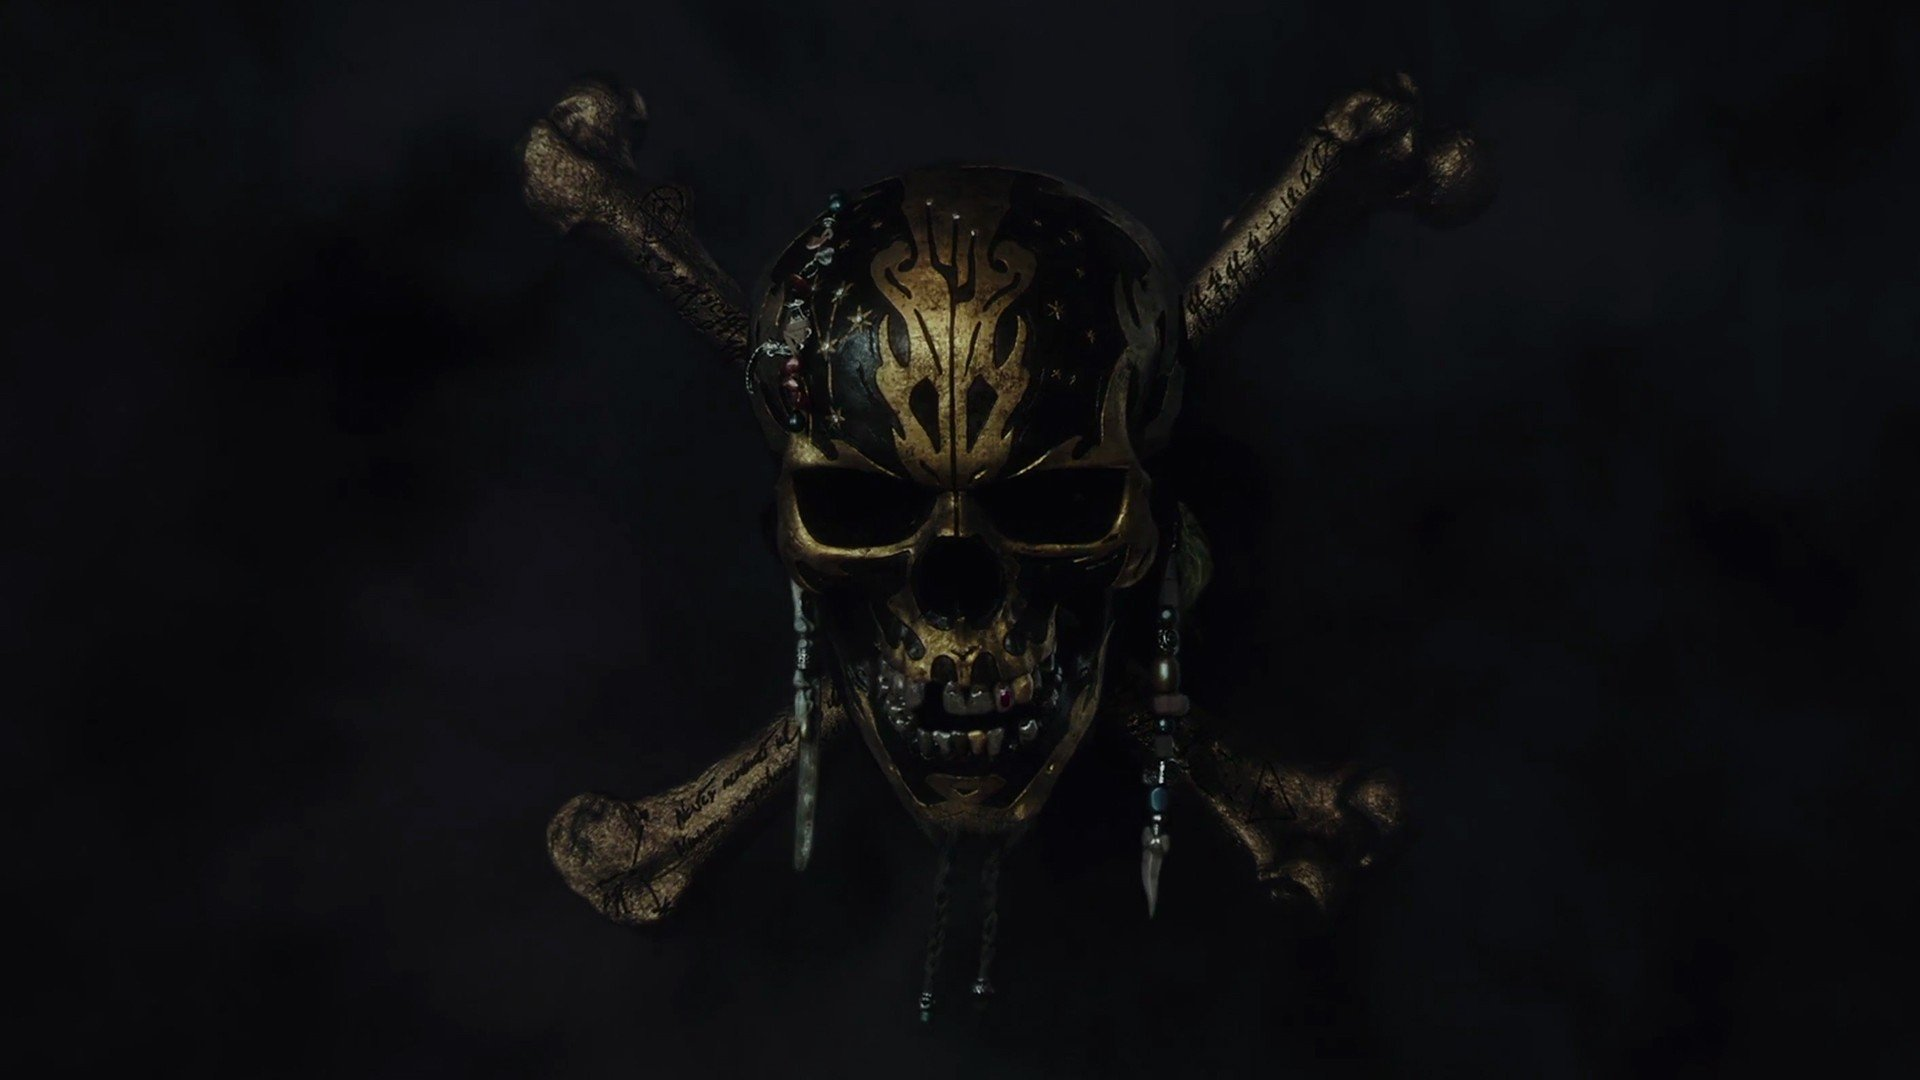 Pirates Of The Caribean Wallpaper: Skull, Pirates Of The Caribbean HD Wallpapers / Desktop